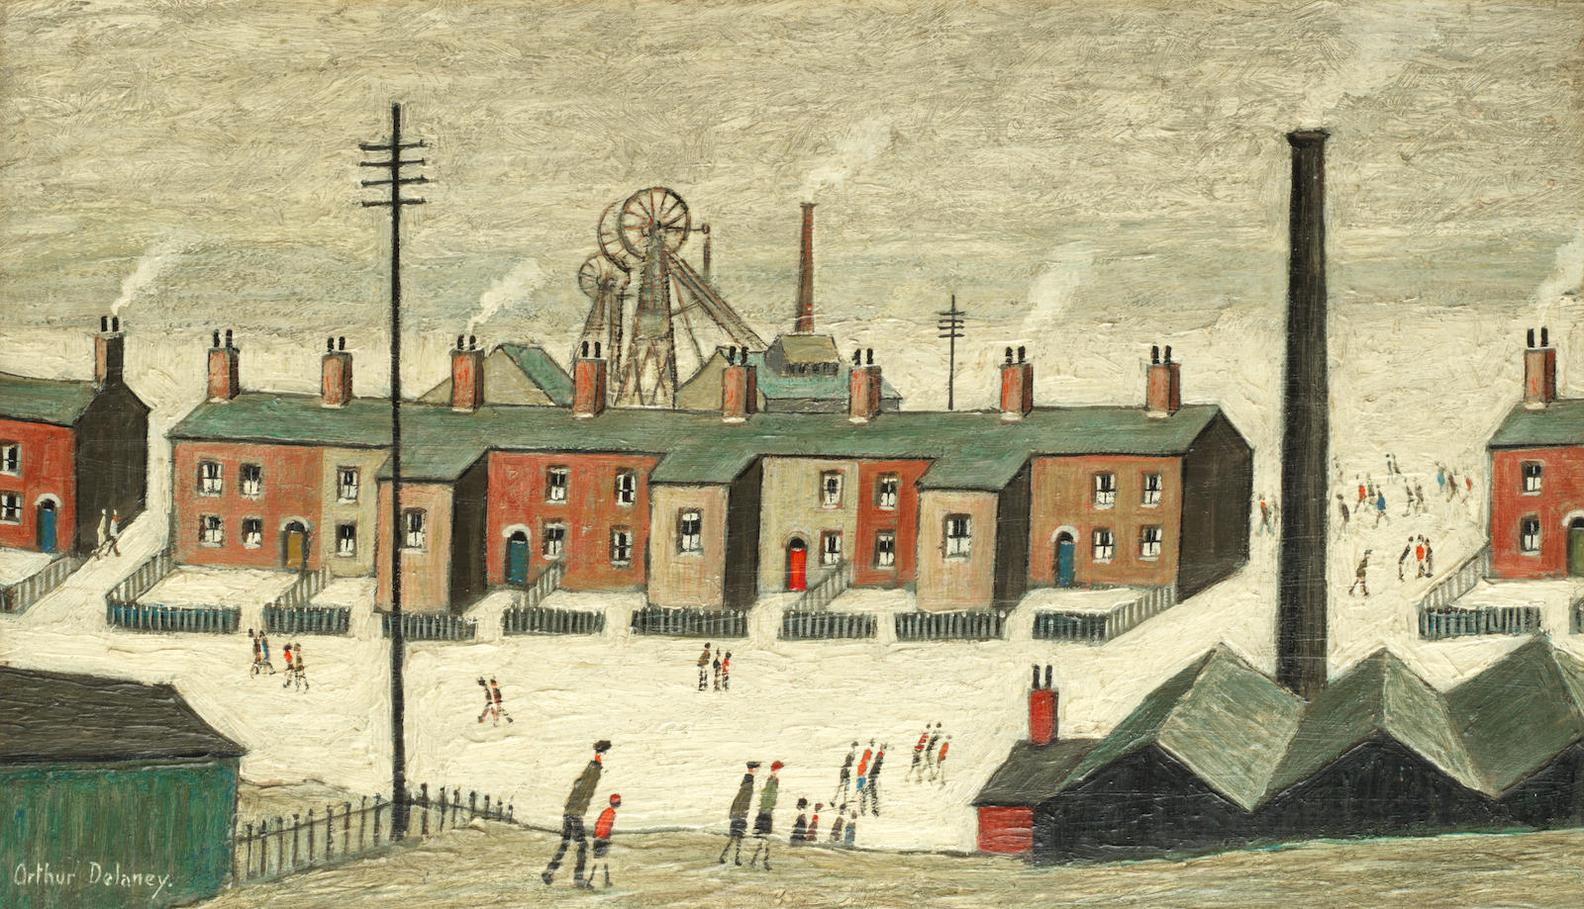 Arthur Delaney - Pit Village With Terraced Houses And Figures-